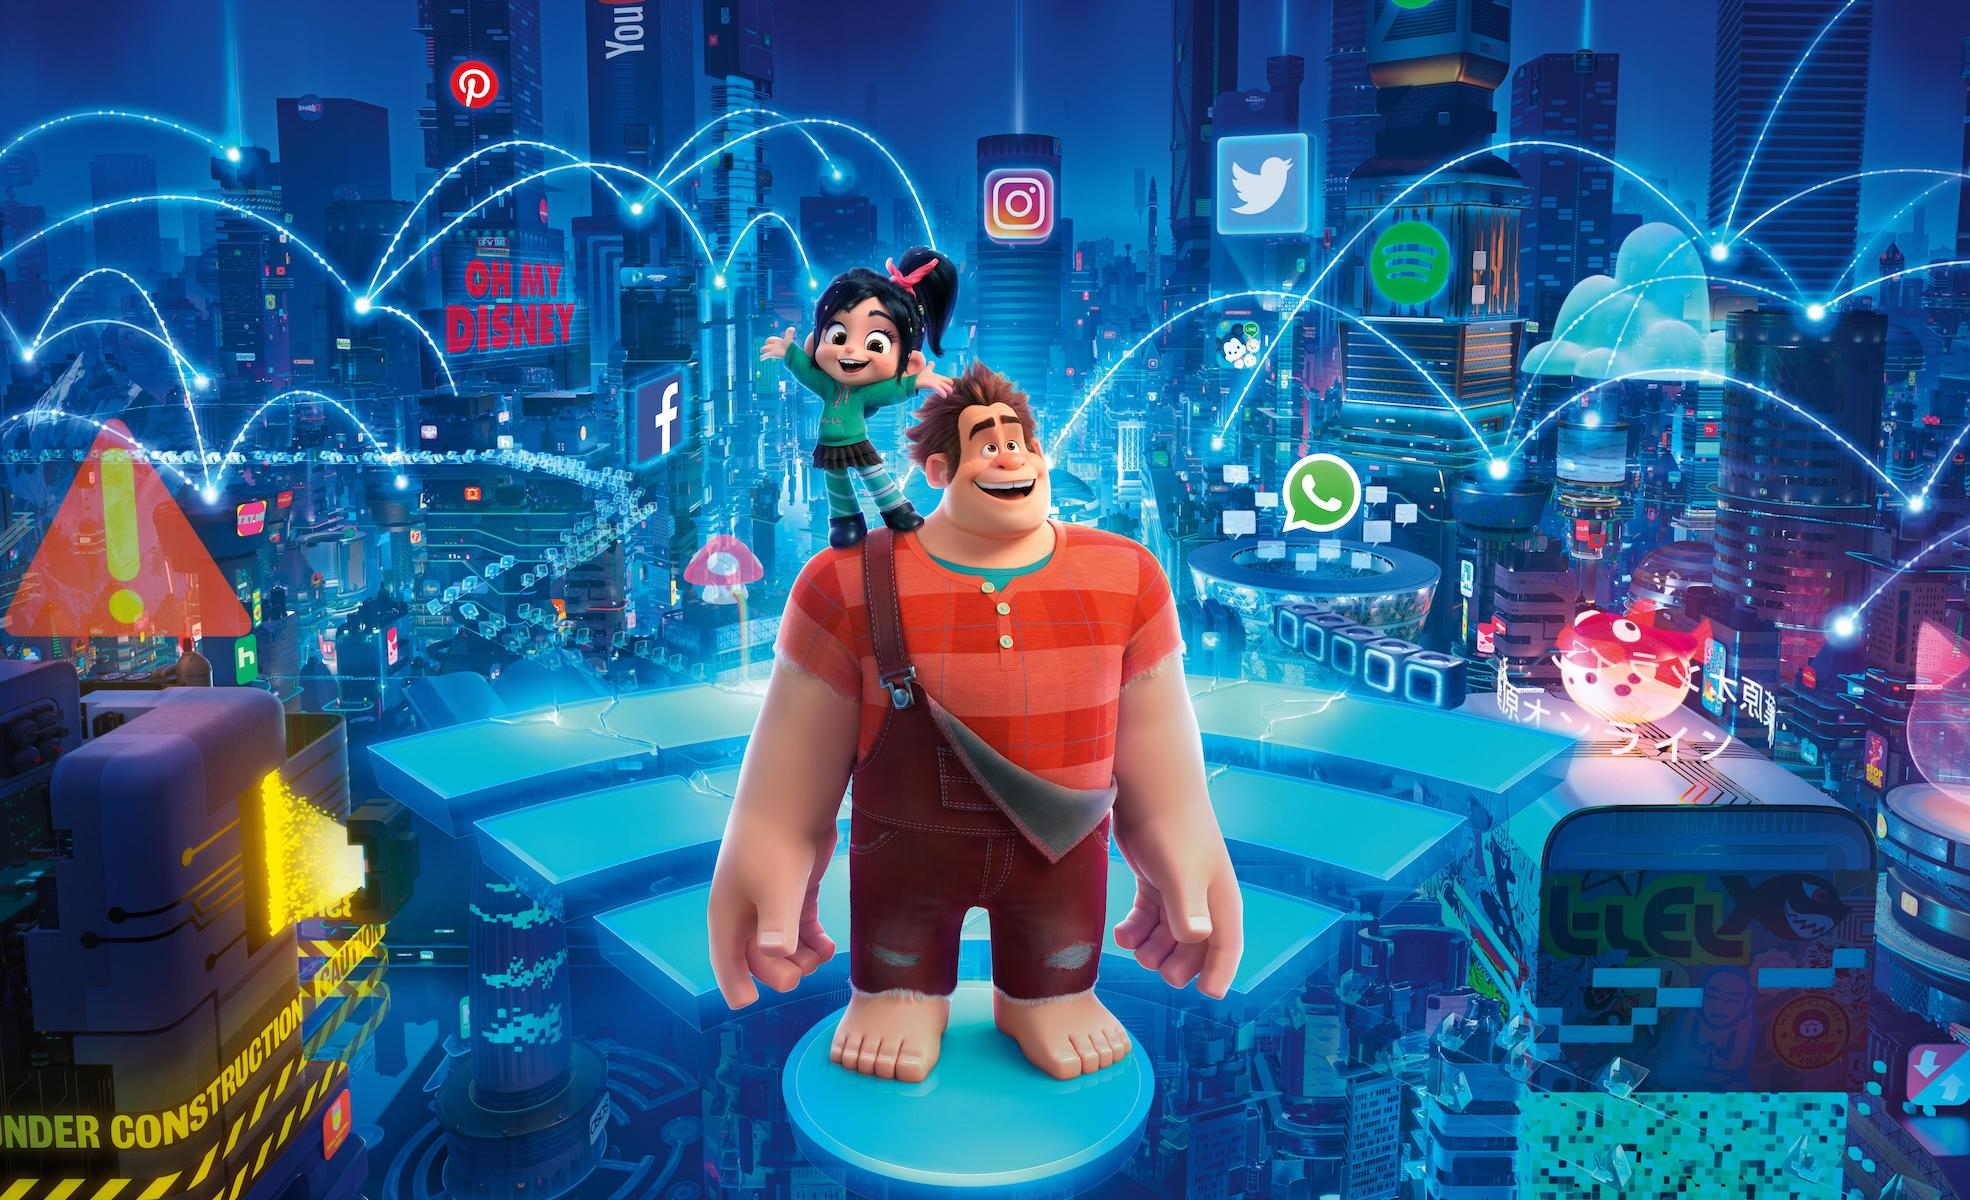 Ralph Breaks The Internet release date on Disney+